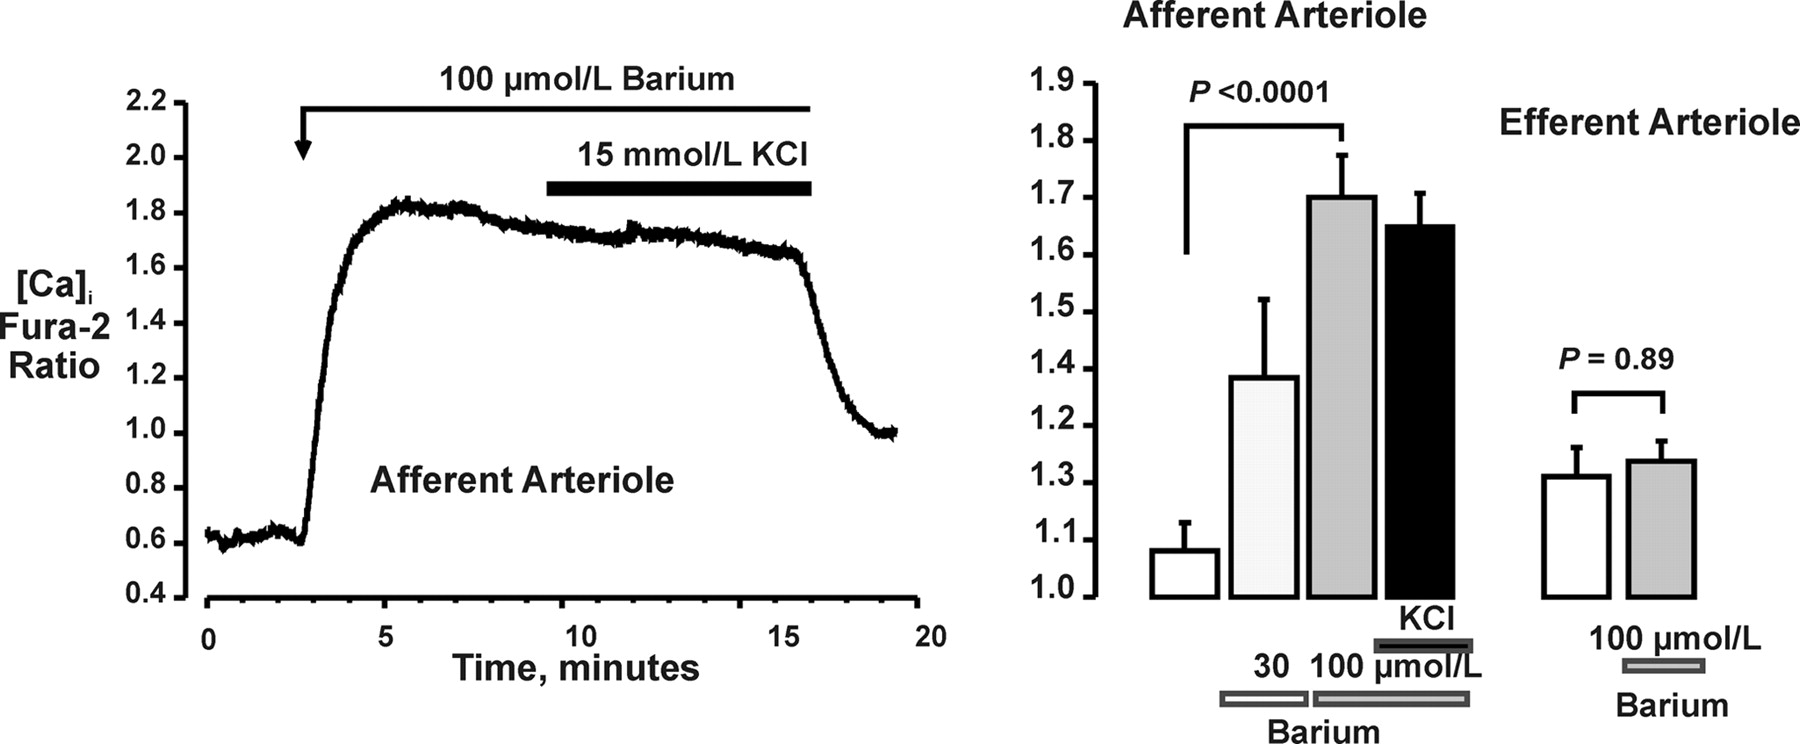 Inward Rectifier K Currents And Kir21 Expression In Renal Afferent